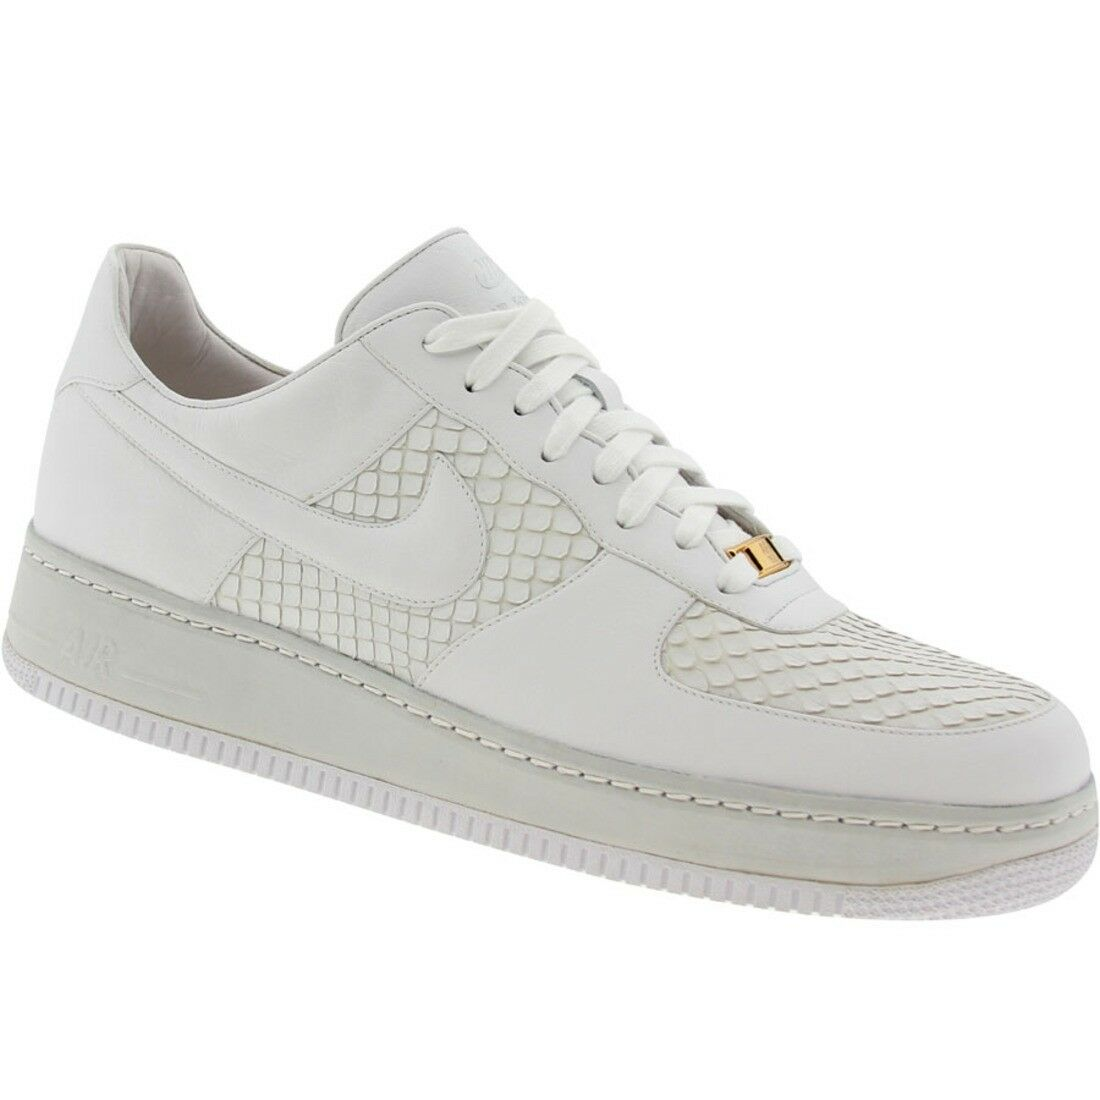 315583-111  2000 Nike Air Force 1 07 Low Lux Masterpiece Anaconda made in